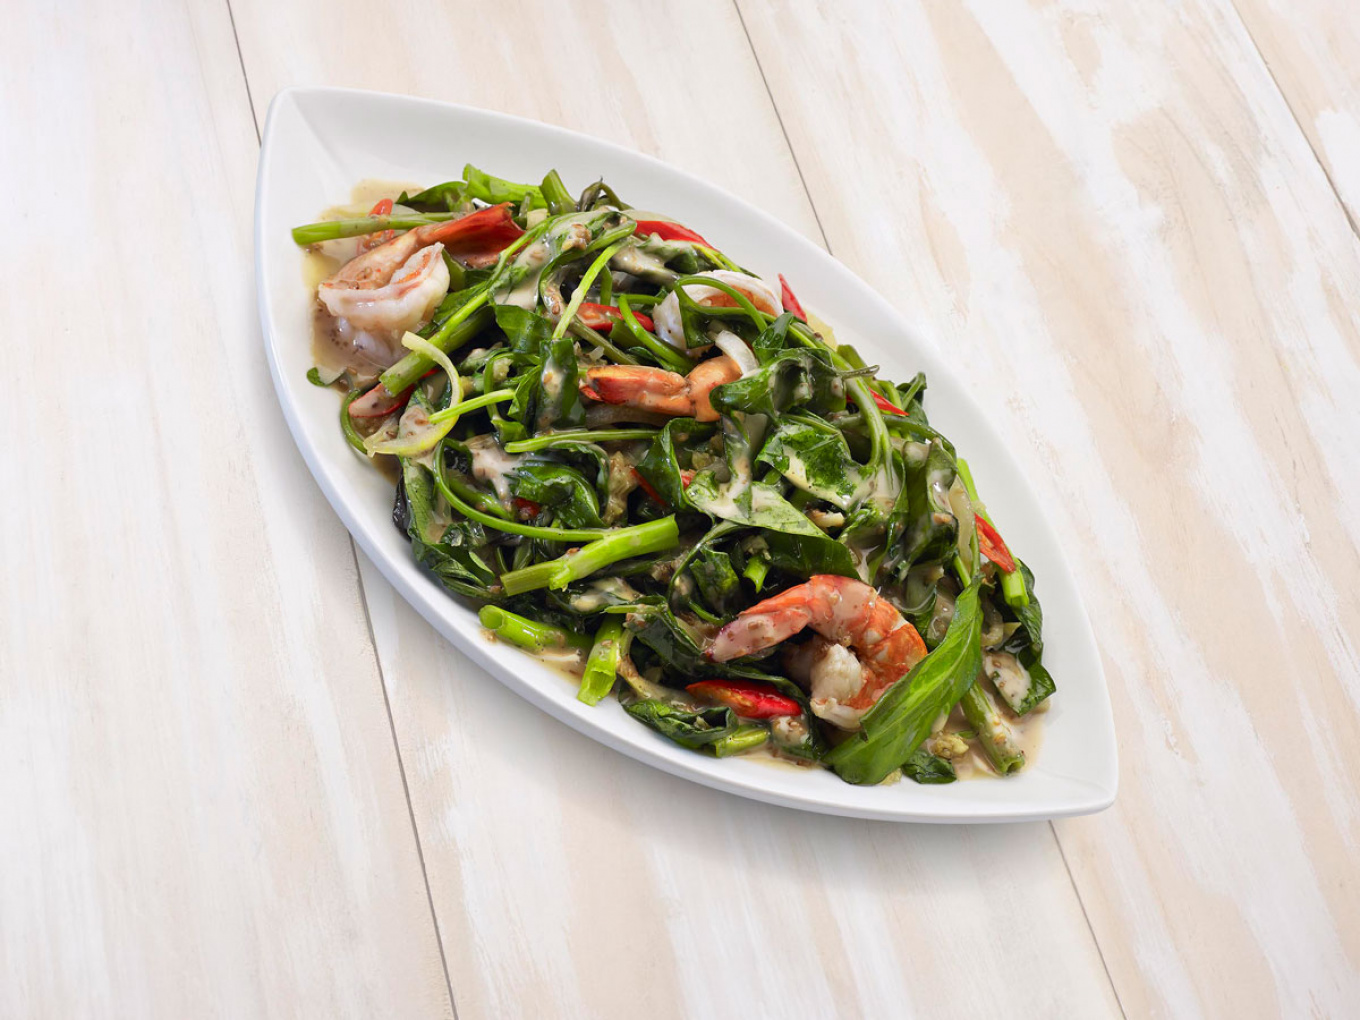 Sautéed Water Spinach with Roasted Sesame